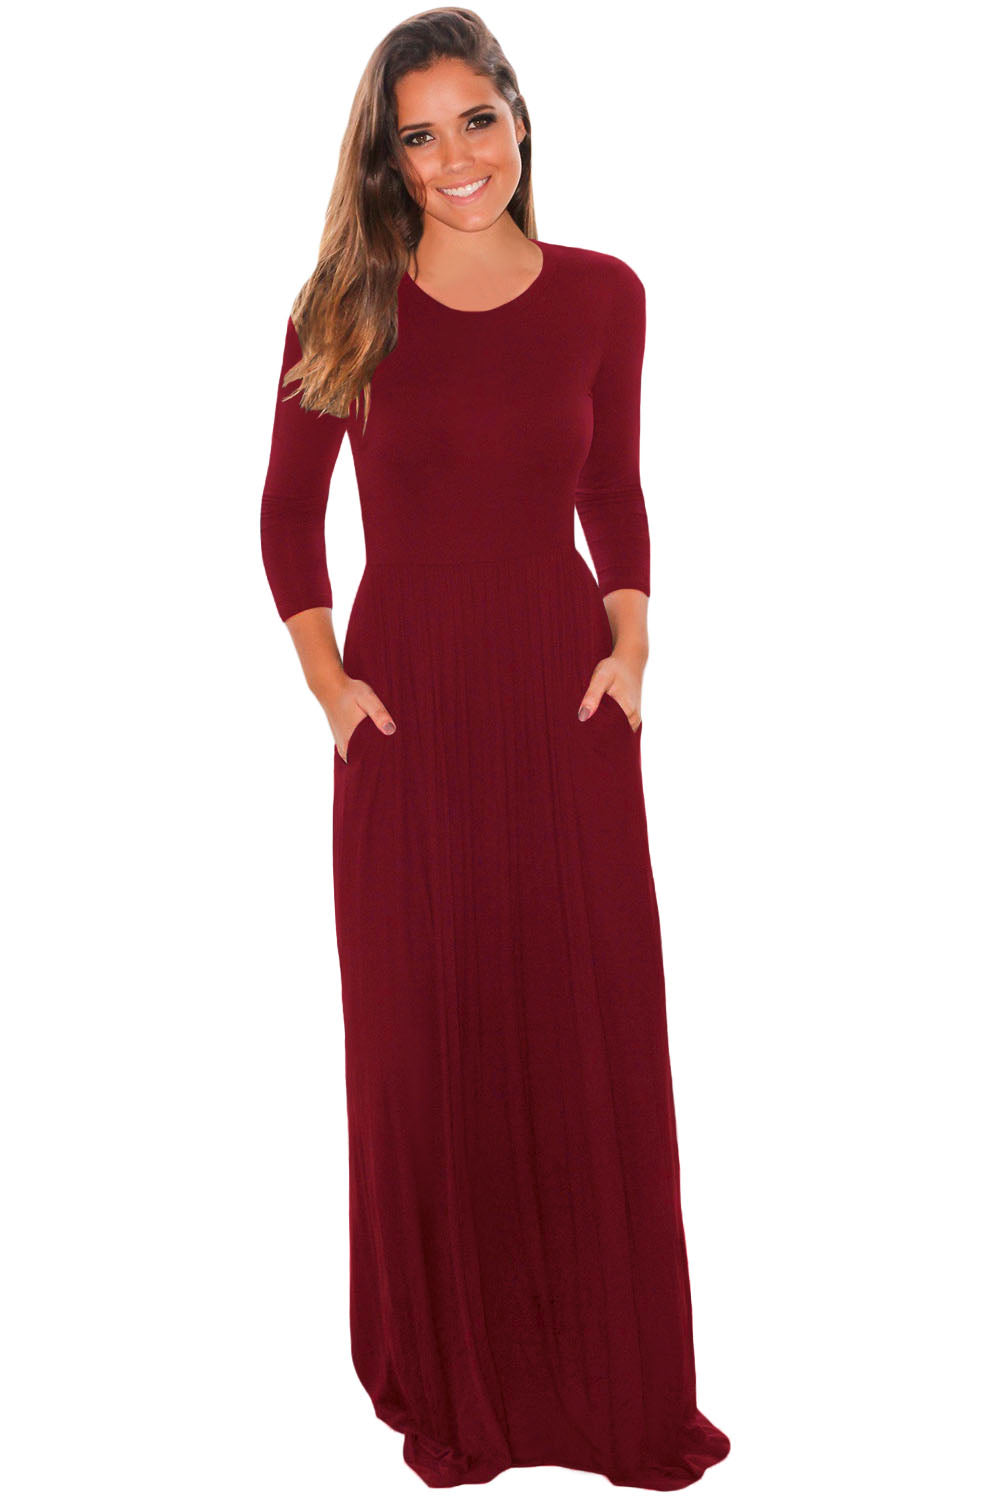 Chicloth Burgundy Pocket Design 3/4 Sleeves Maxi Dress